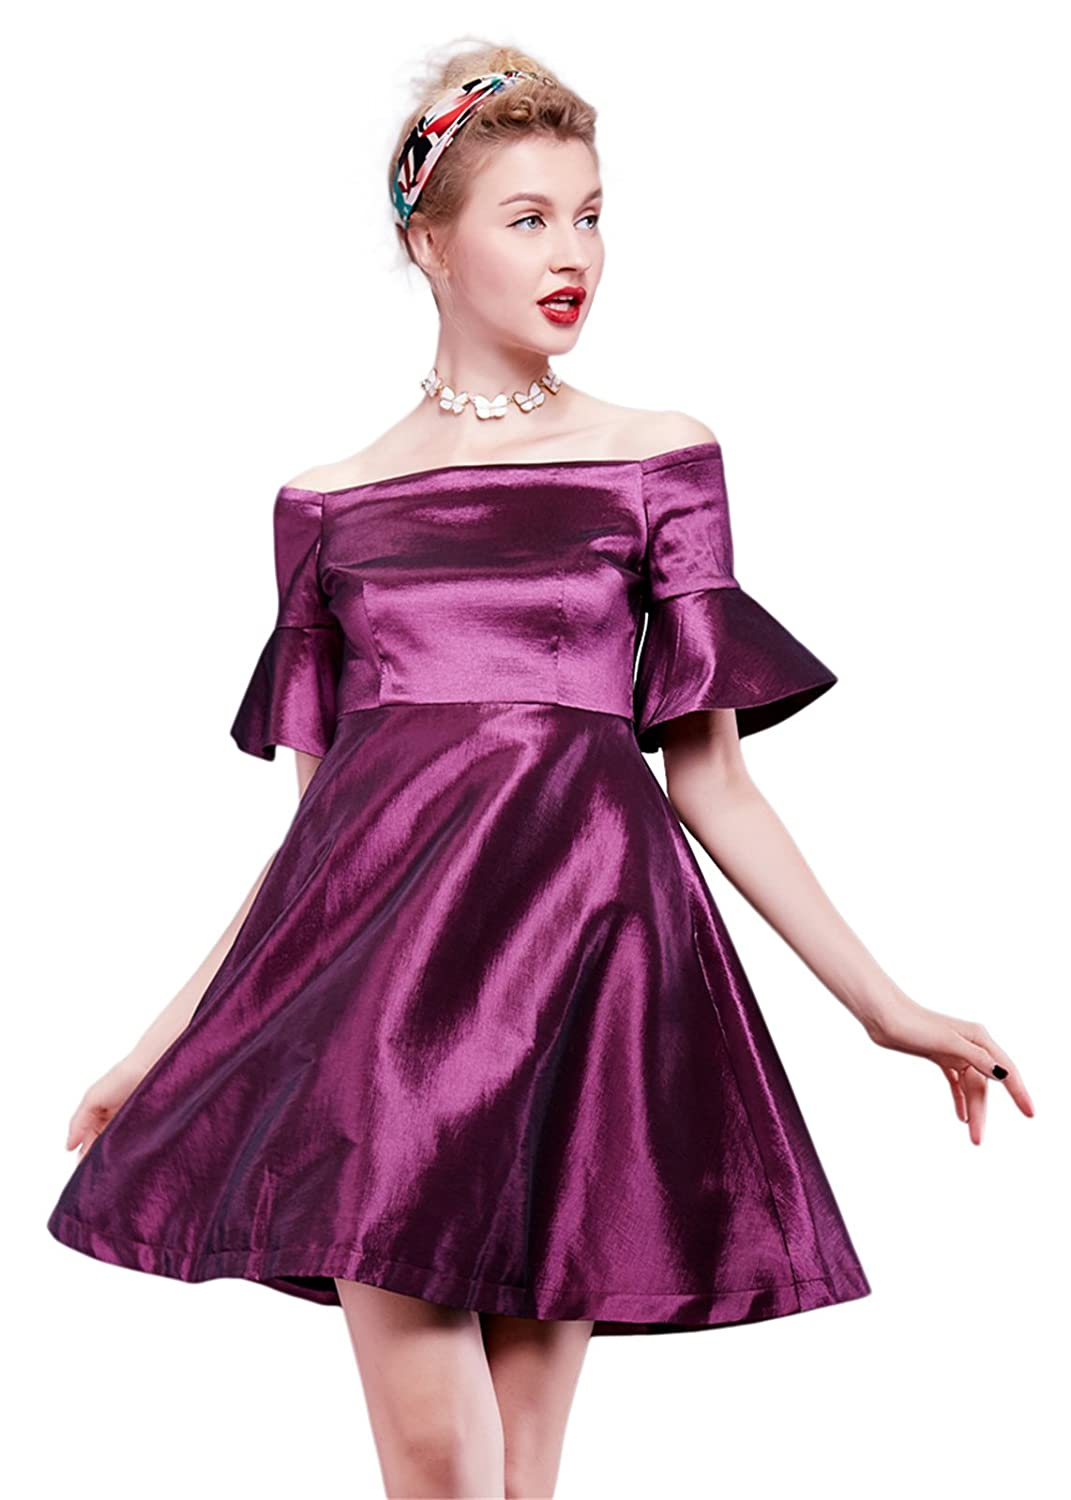 Luna et Margarita A-line satin cocktail dress high waist feminine and classic design